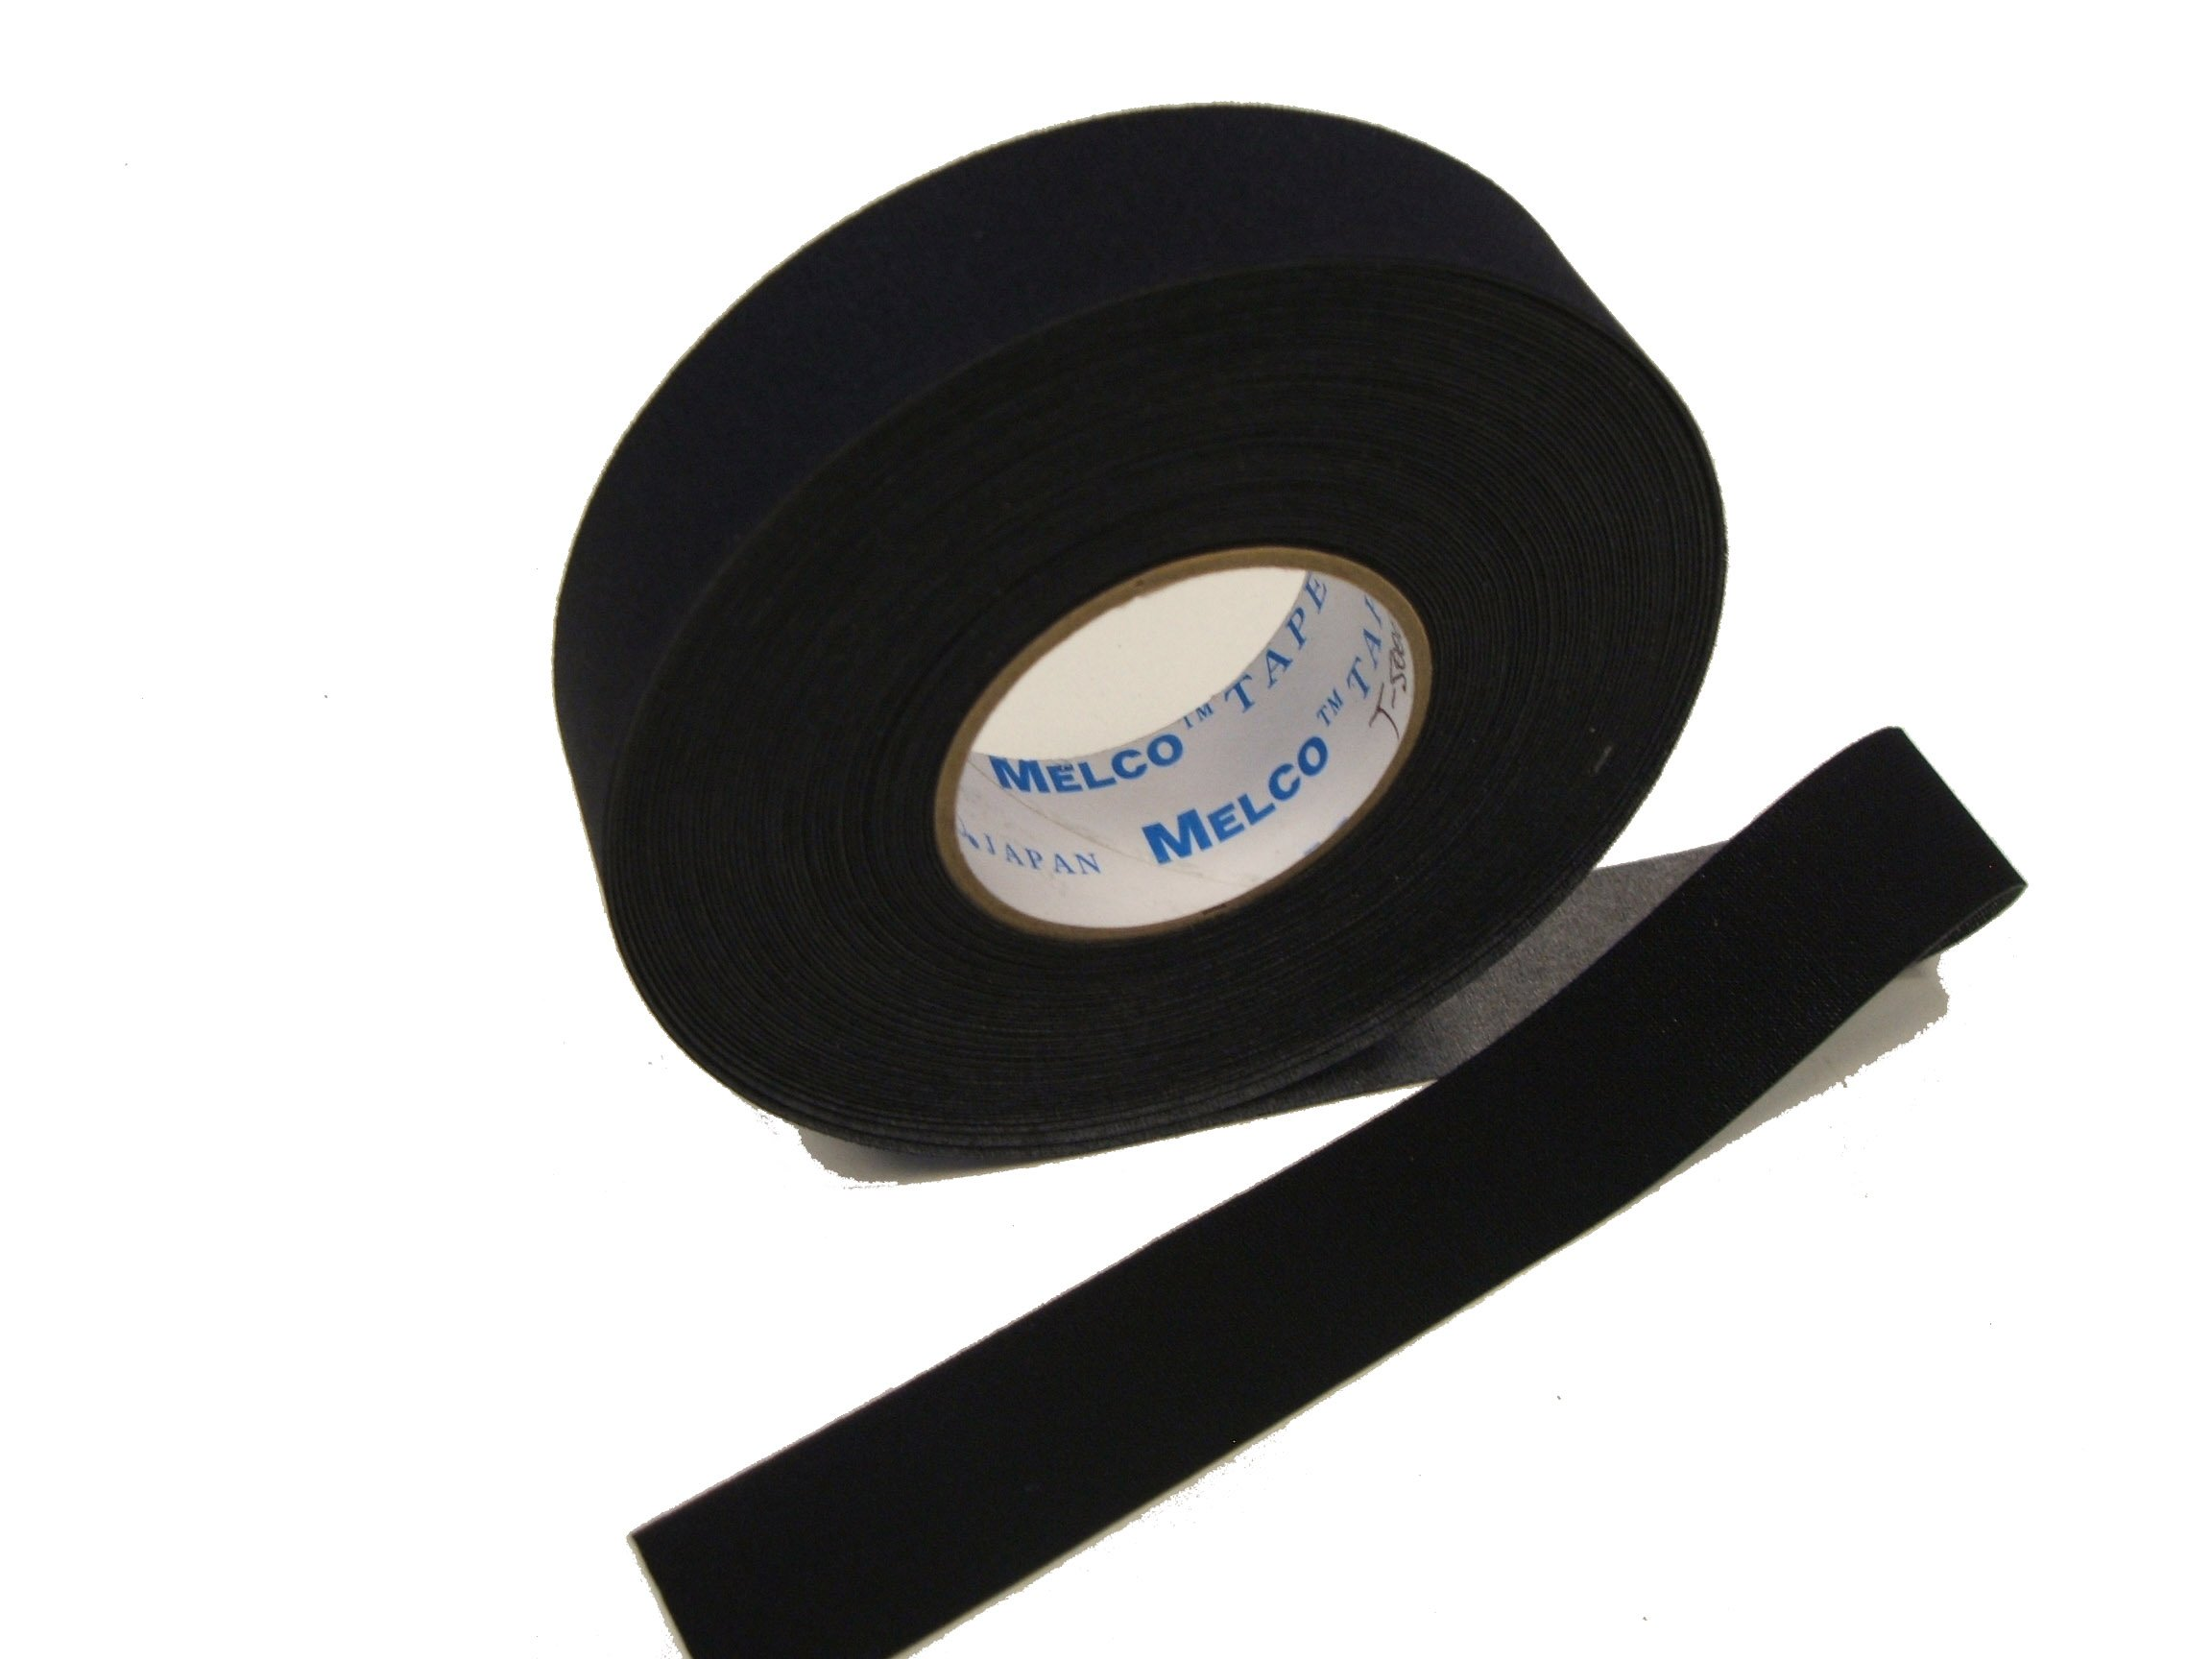 Cinta sellado neopreno Tape Melco T-5000 2